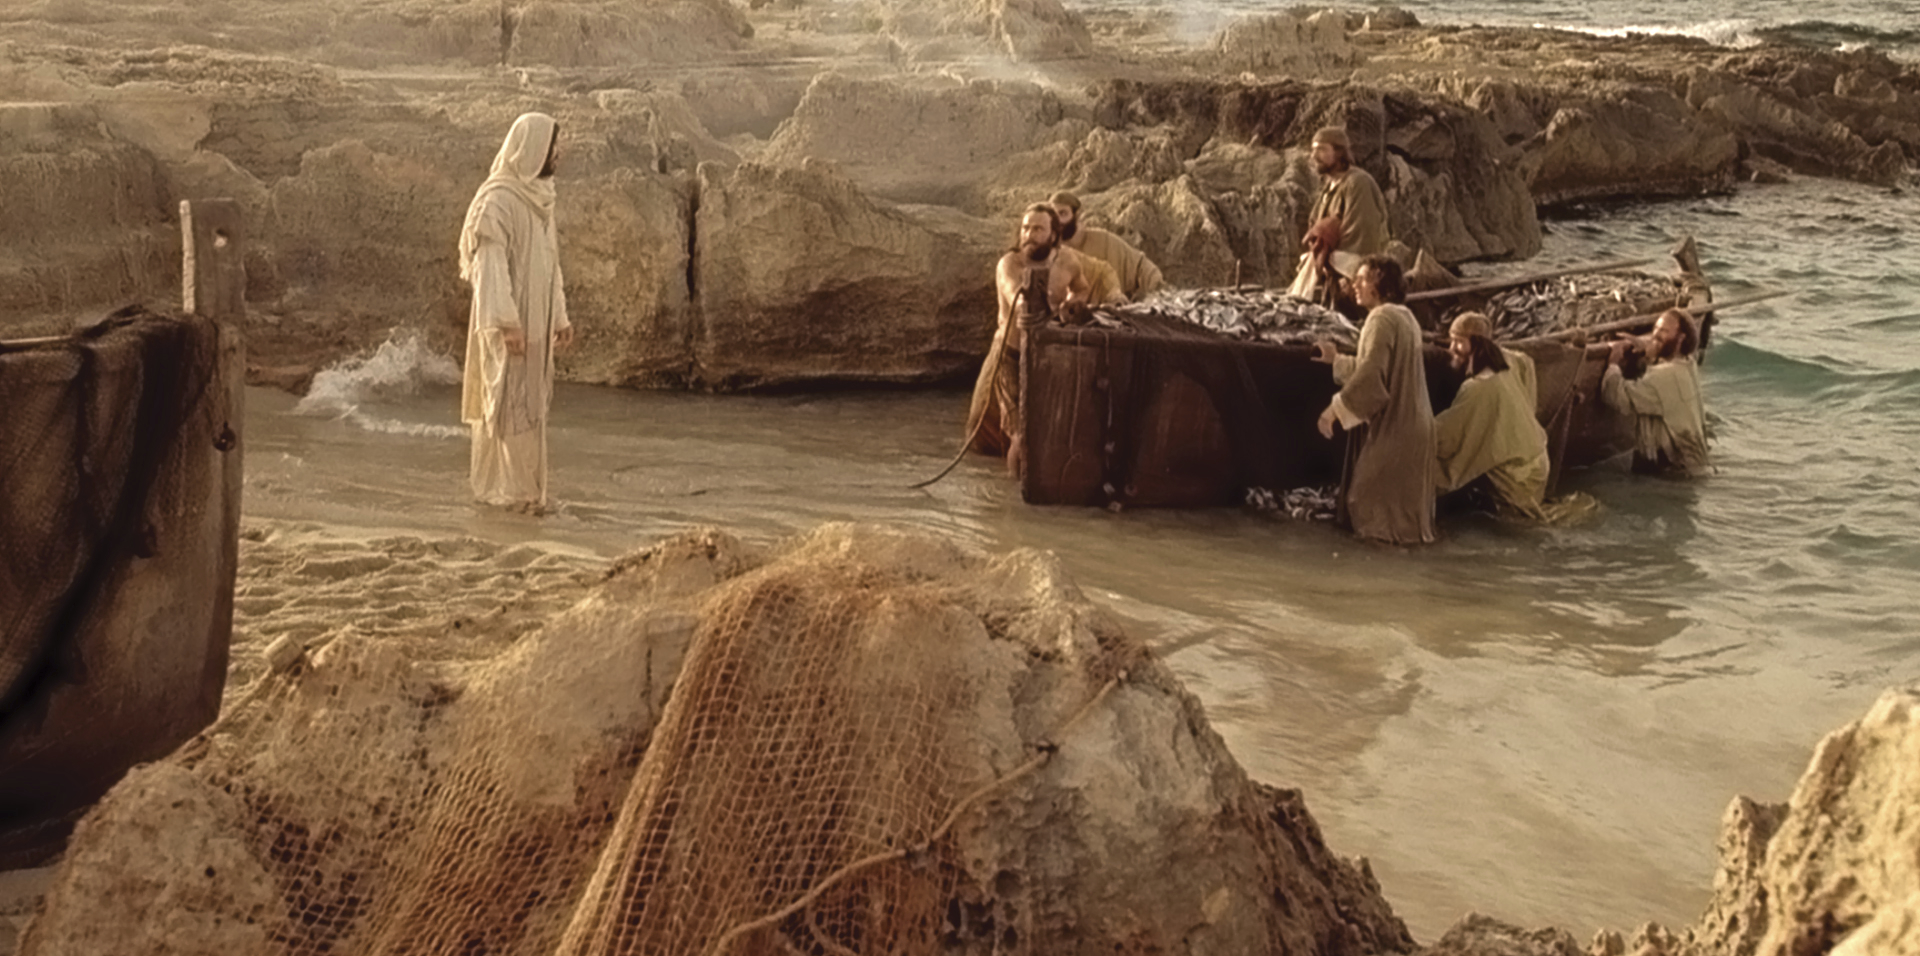 The disciples greet Christ on the shore.